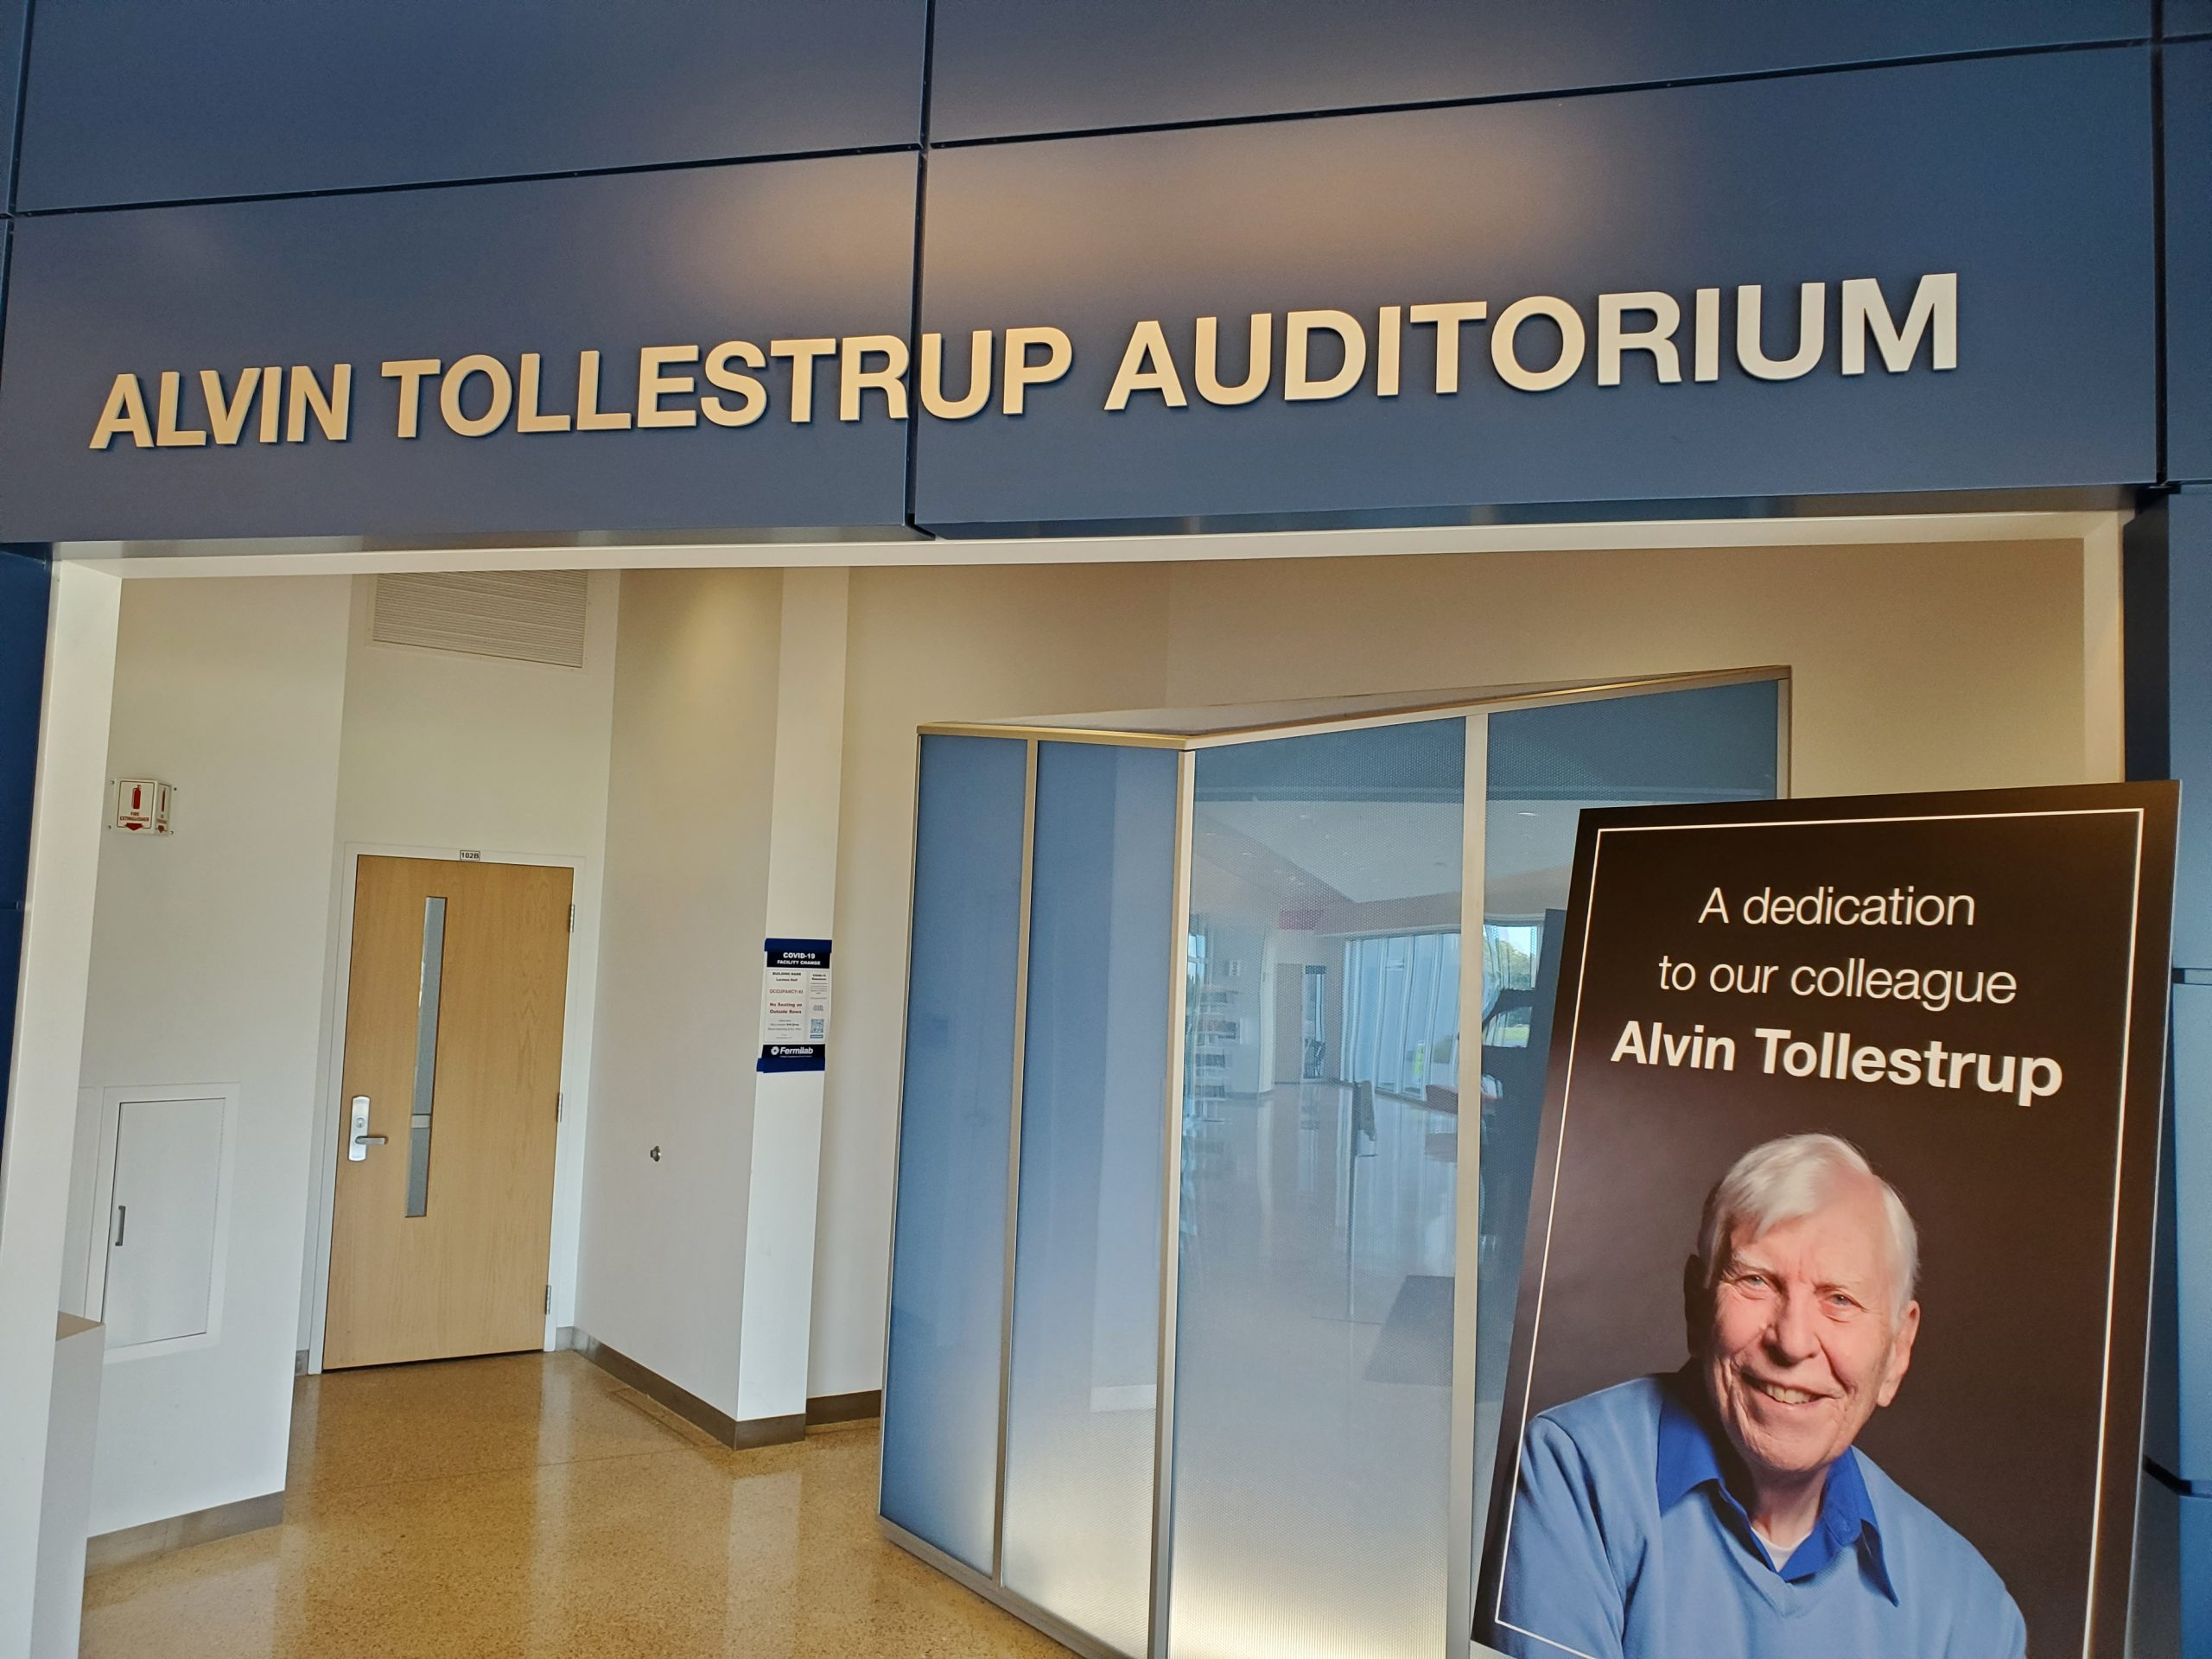 """You can <a href=""""https://events.fnal.gov/honoring-alvin-tollestrup/submit-your-recollections/"""">submit your remembrances of Alvin Tollestrup online</a>. people, building, IARC Photo: Julius Borchert"""